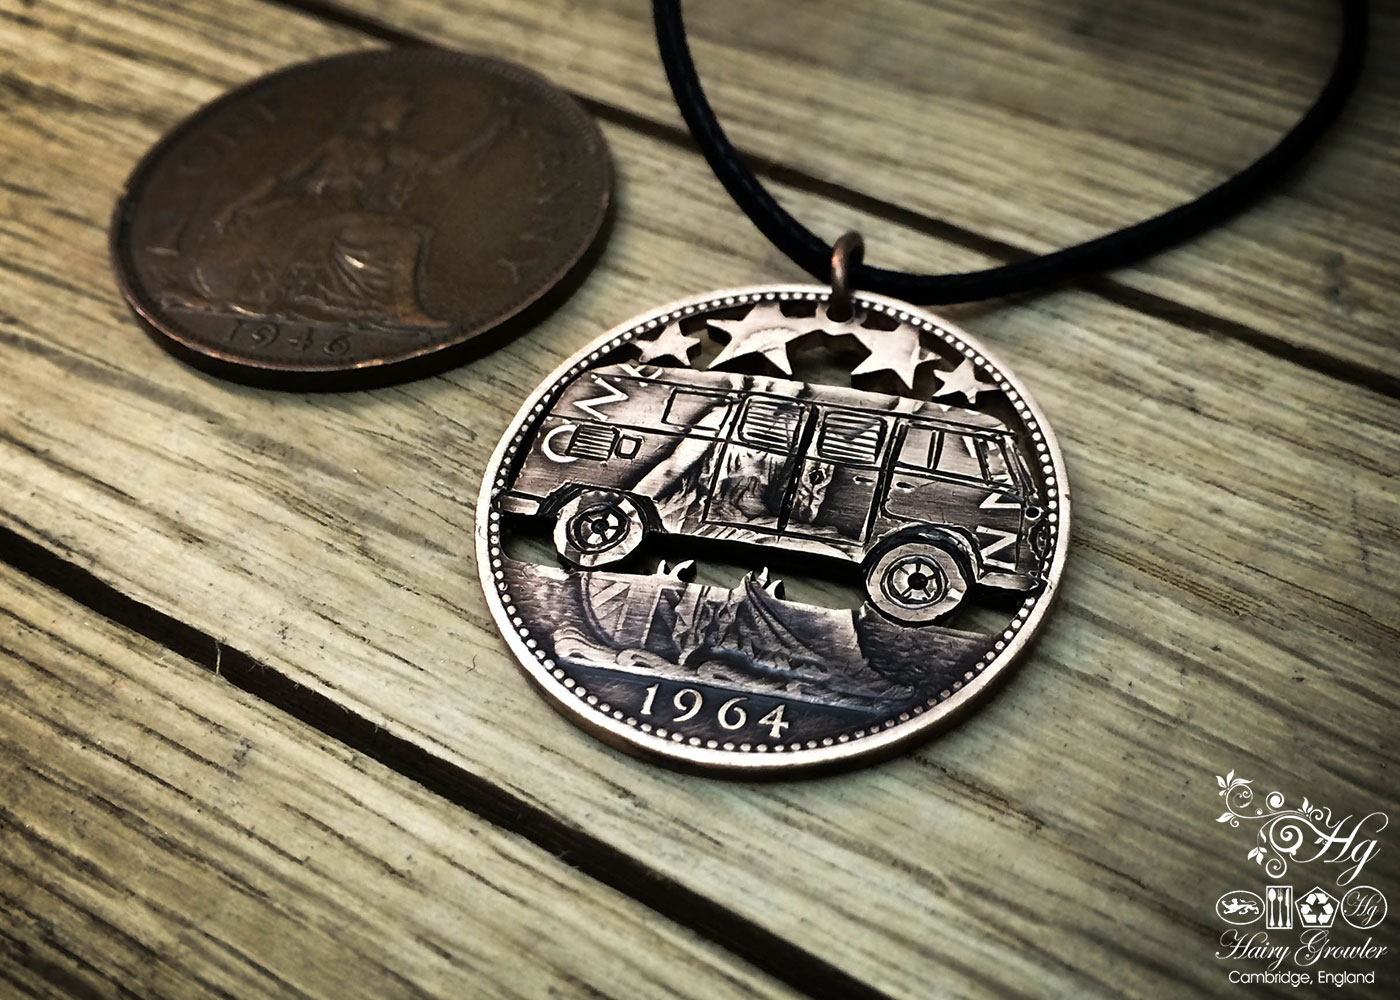 Handmade and upcycled coin VW camper-van pendant necklace